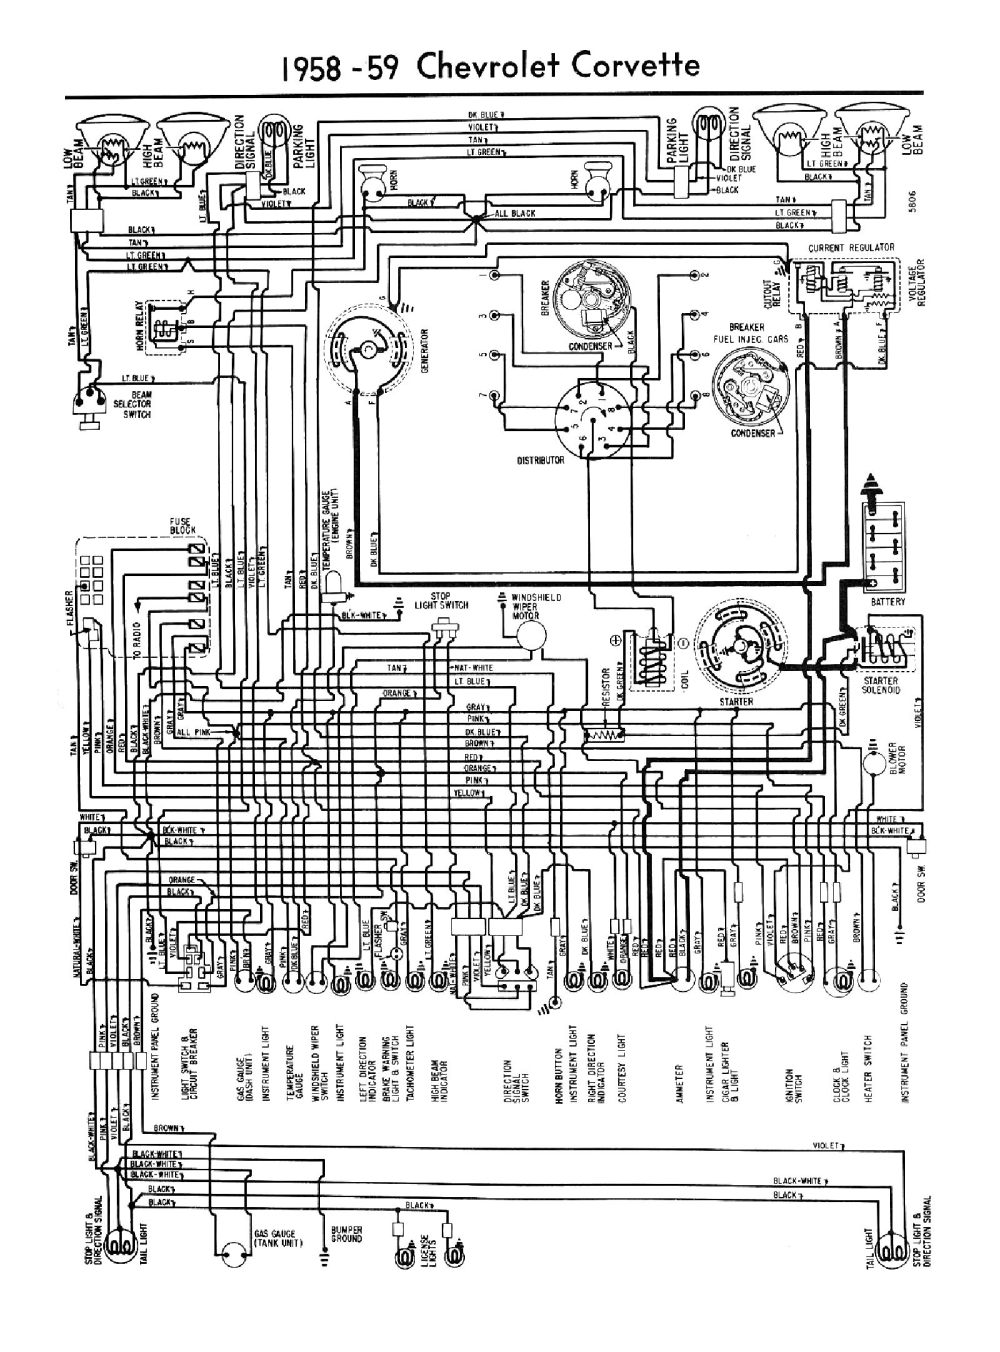 medium resolution of 1960 c10 wiring diagram wiring diagrams 1960 chevrolet wagon wiring diagram 1960 c10 wiring diagram wiring